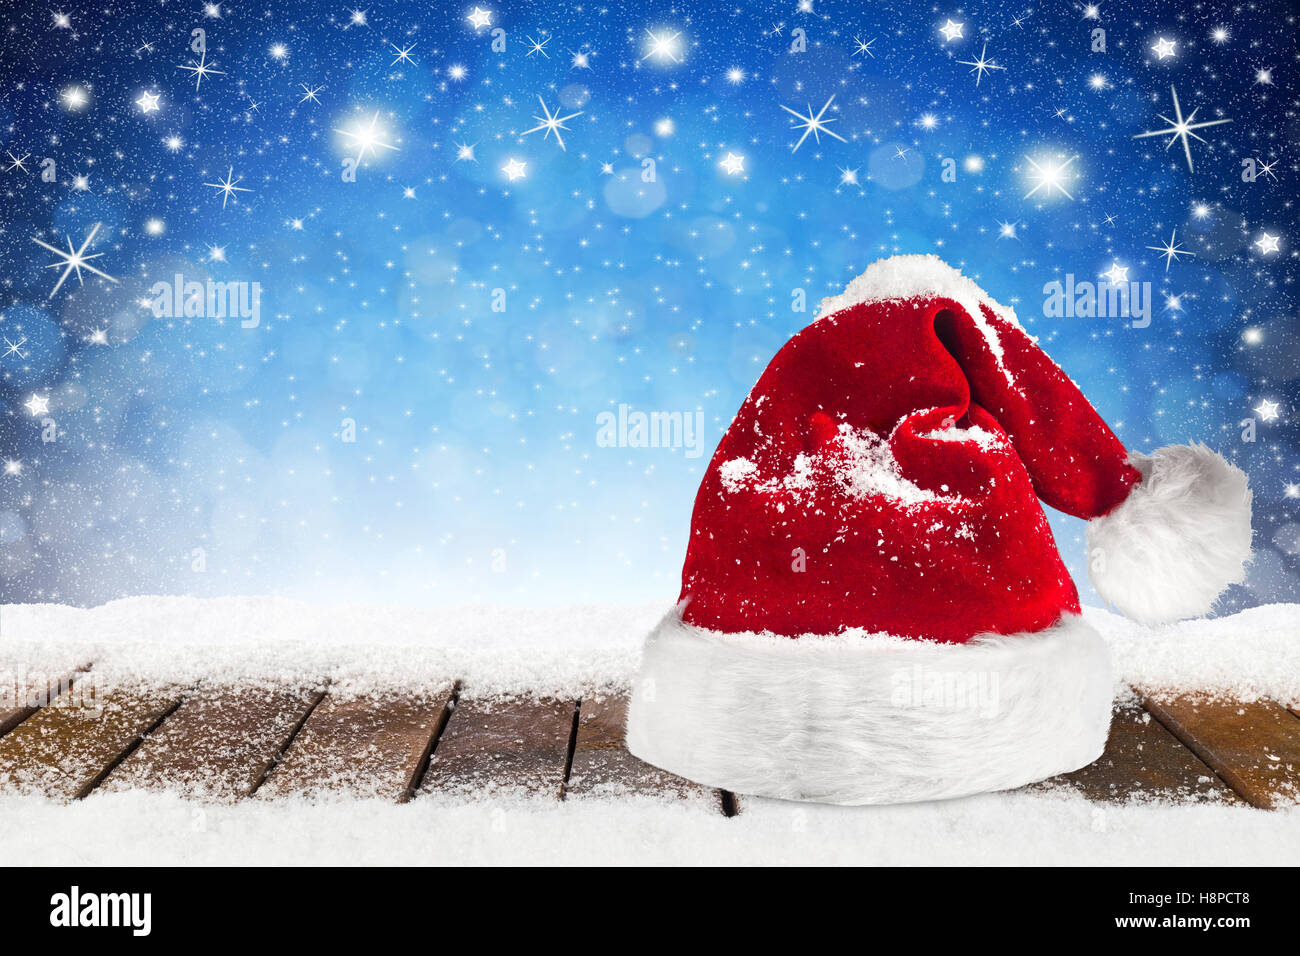 86b70bc55009e christmas xmas background with santa claus hat cap on wooden snowy planks  in front of blue night sky stars and snowflakes